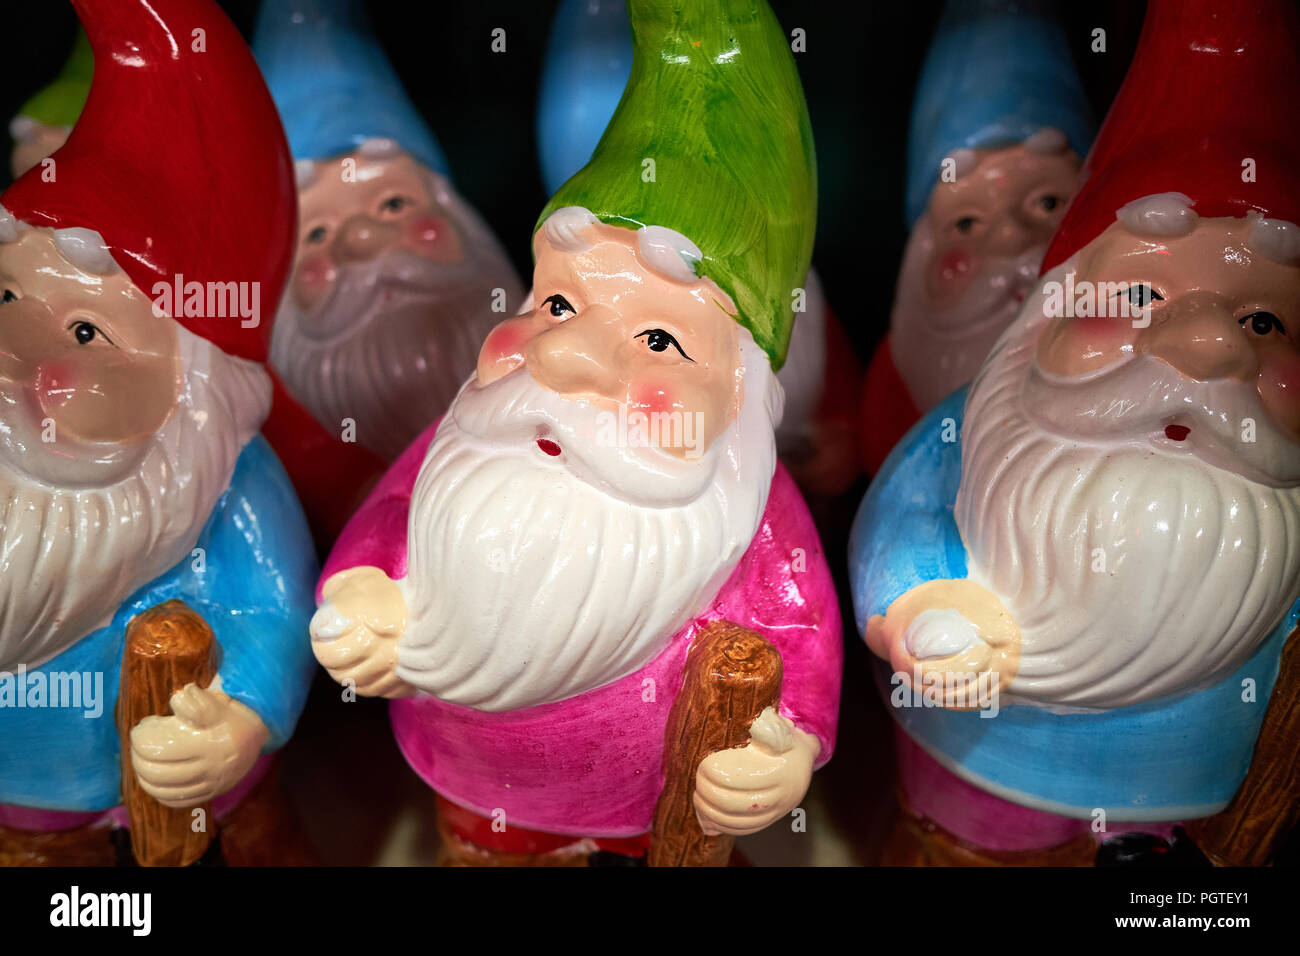 A number of garden gnomes in rows on a shelf - Stock Image